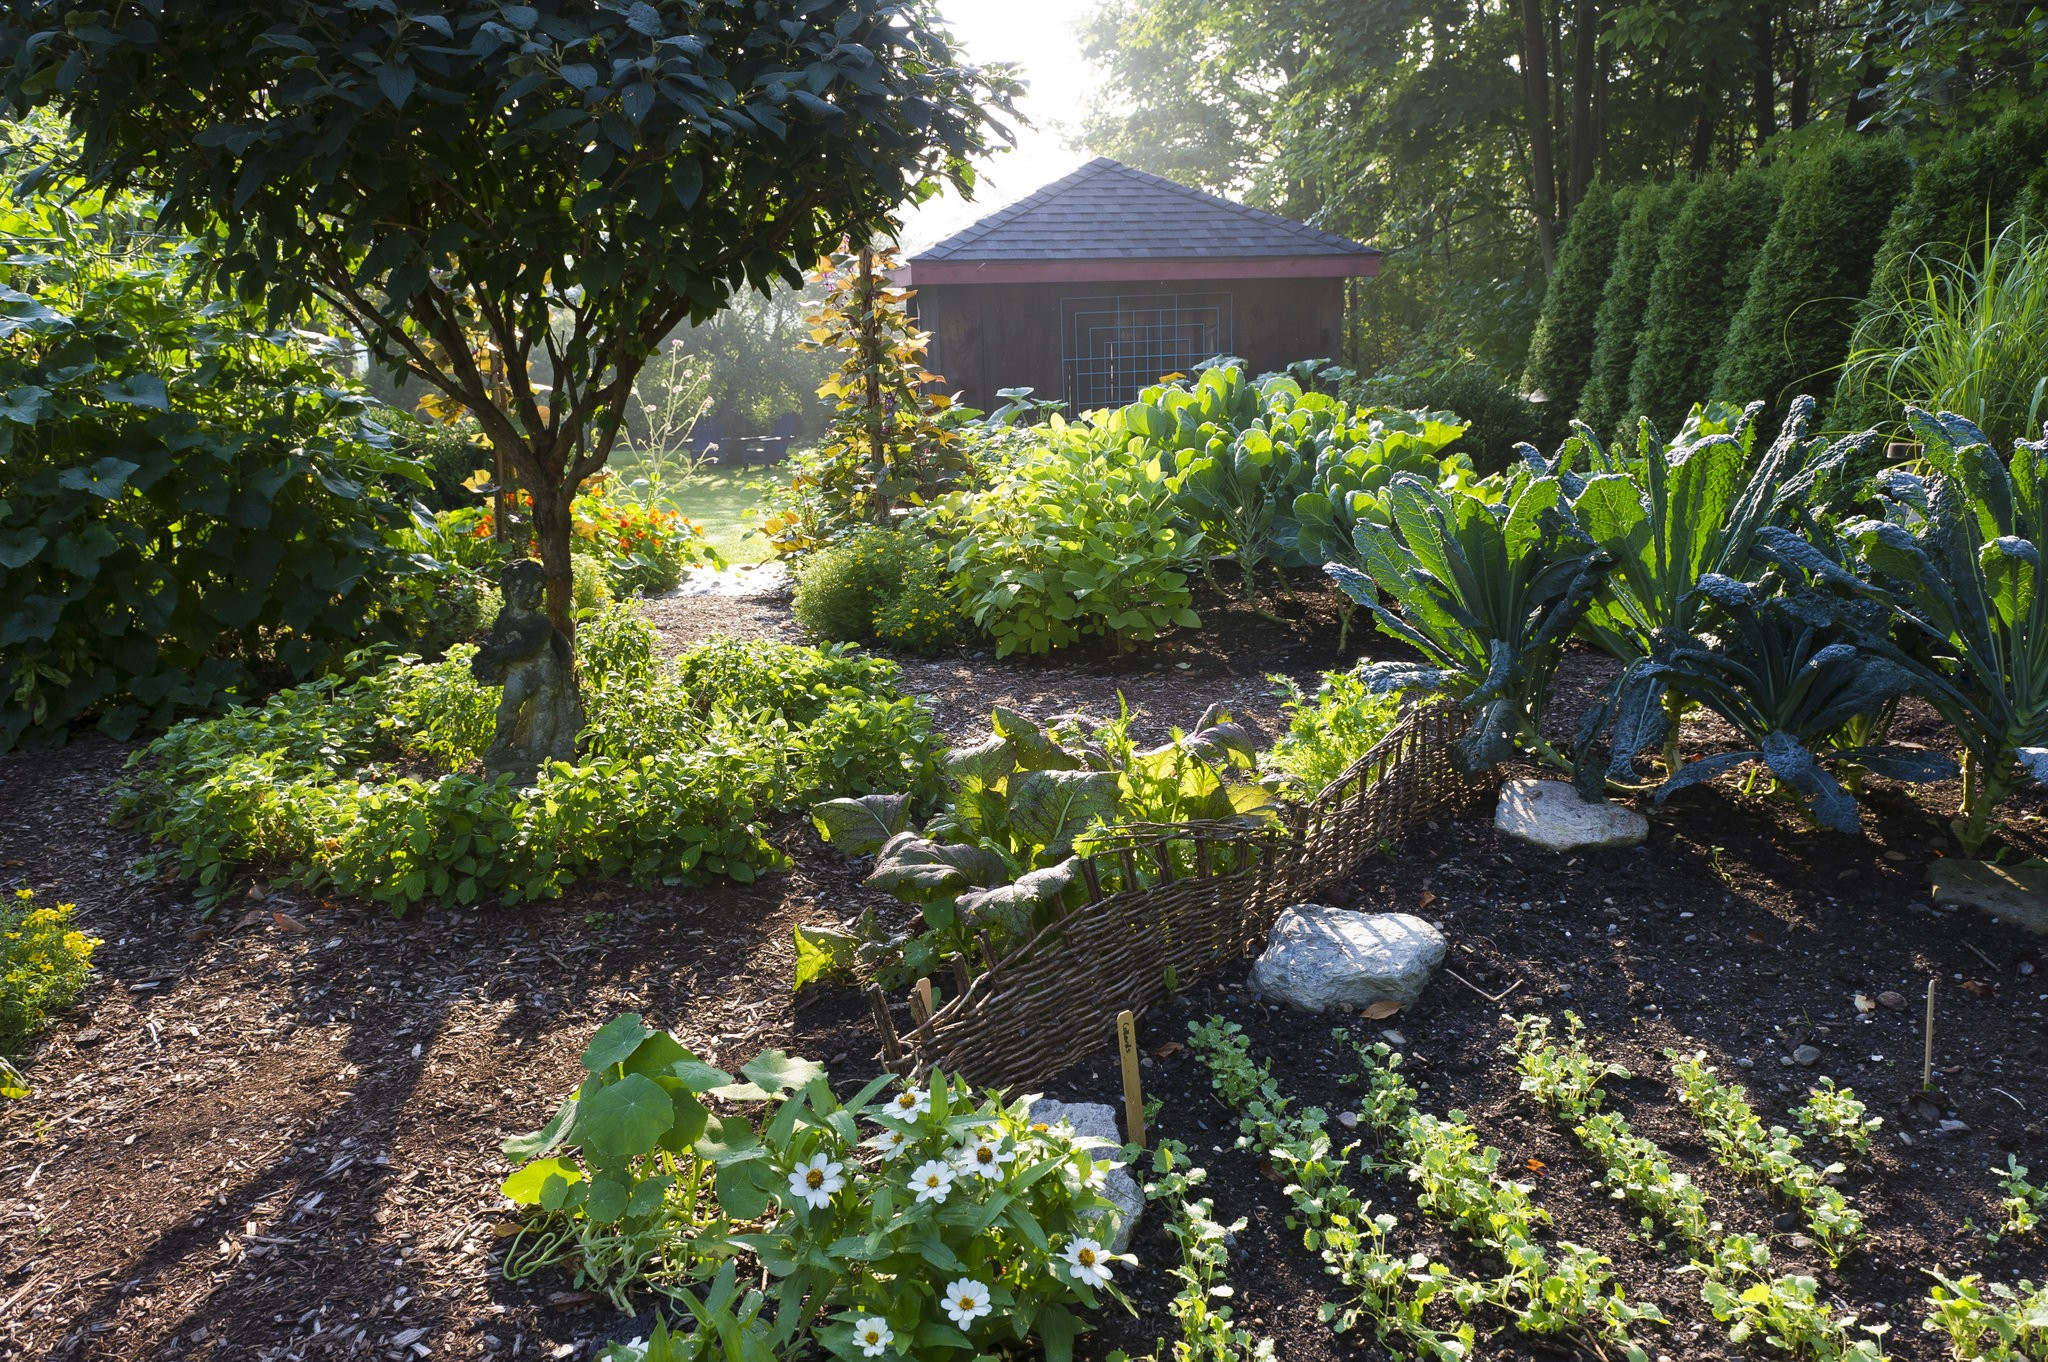 Grow Vegetables In The Shade It S Possible George Weigel Pennlive Com